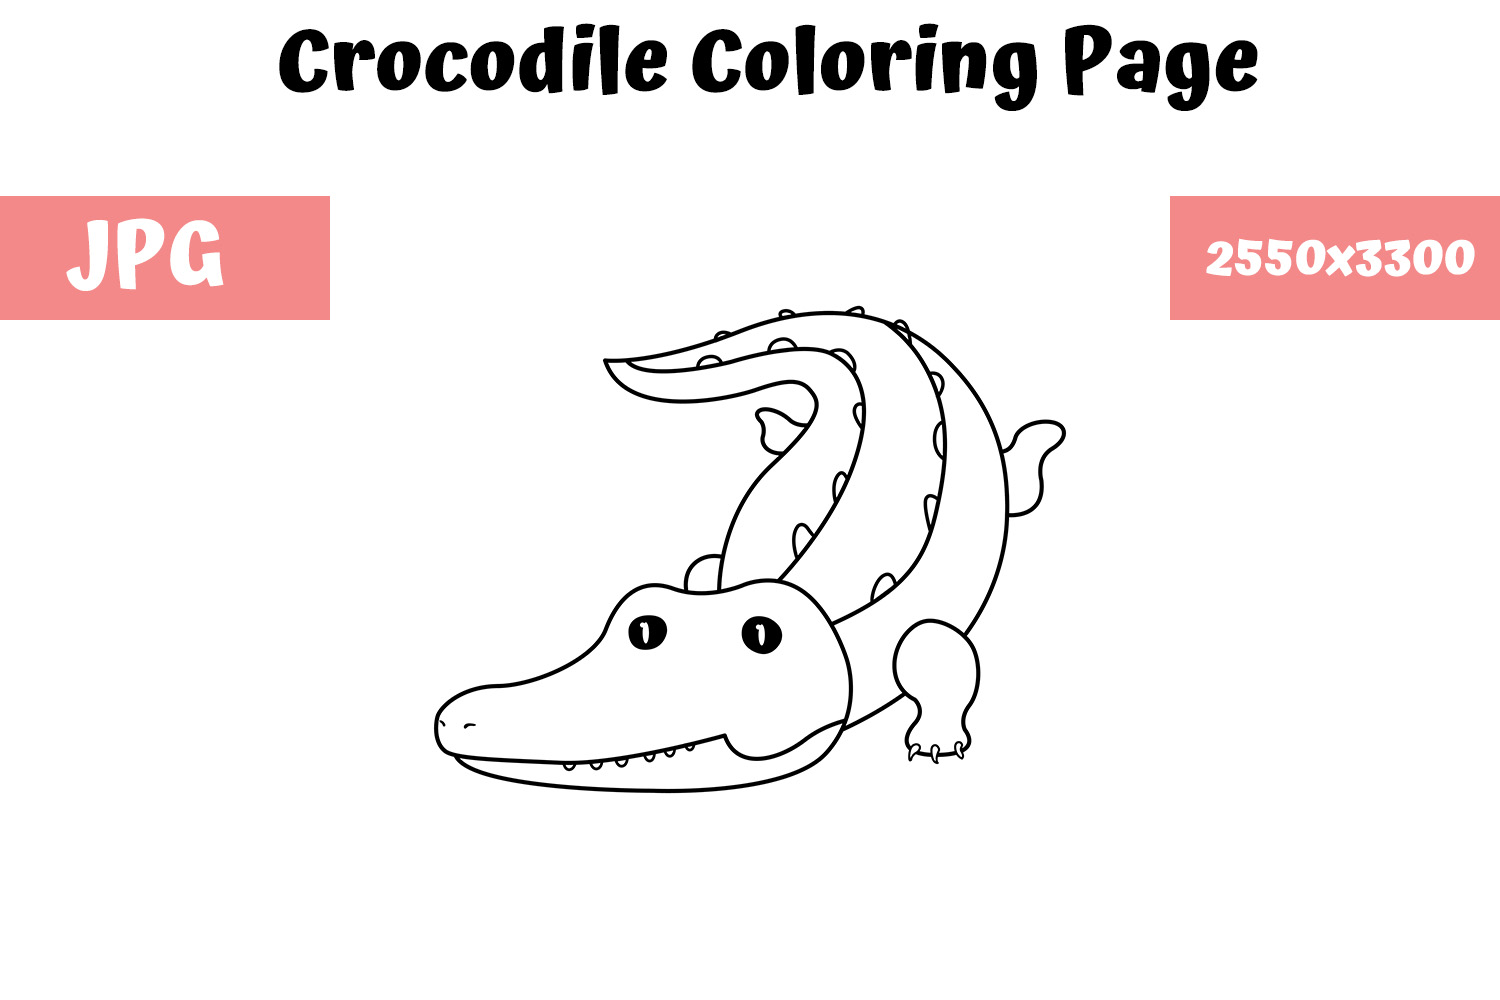 Cartoon Crocodile coloring page   Free Printable Coloring Pages   1000x1500